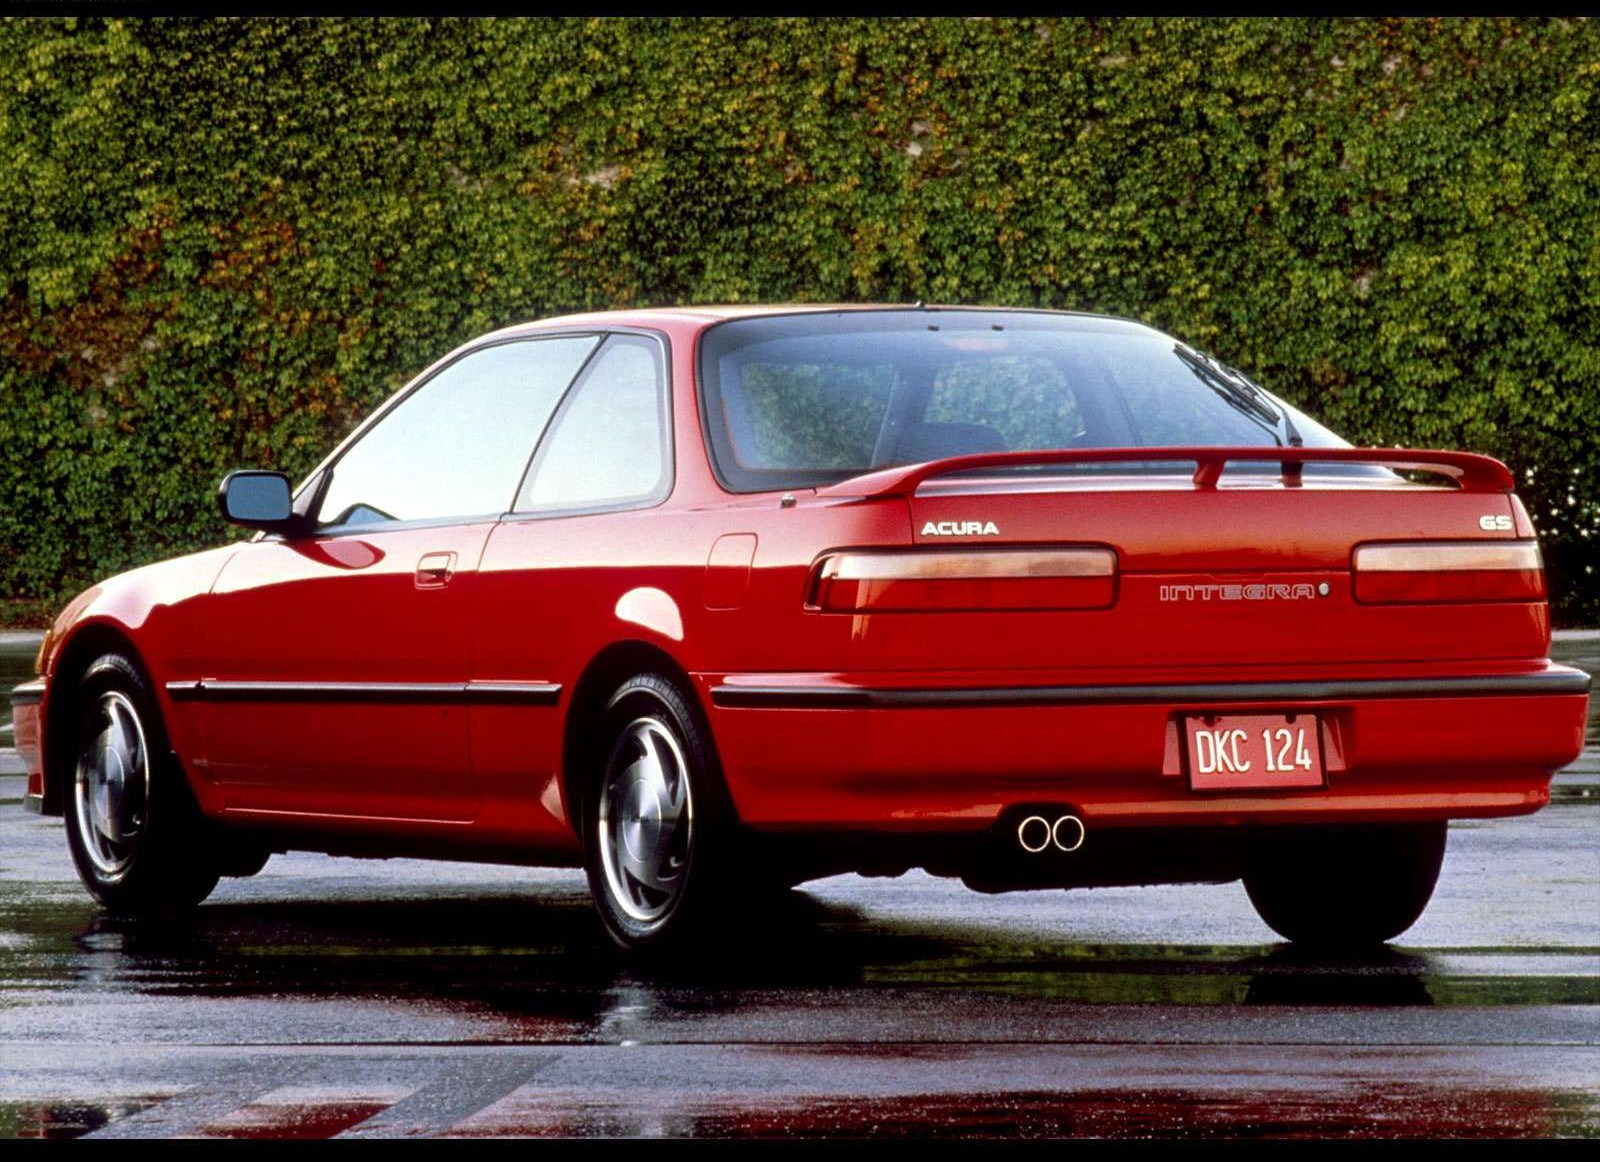 Best Wallpapers: Acura Integra Wallpapers